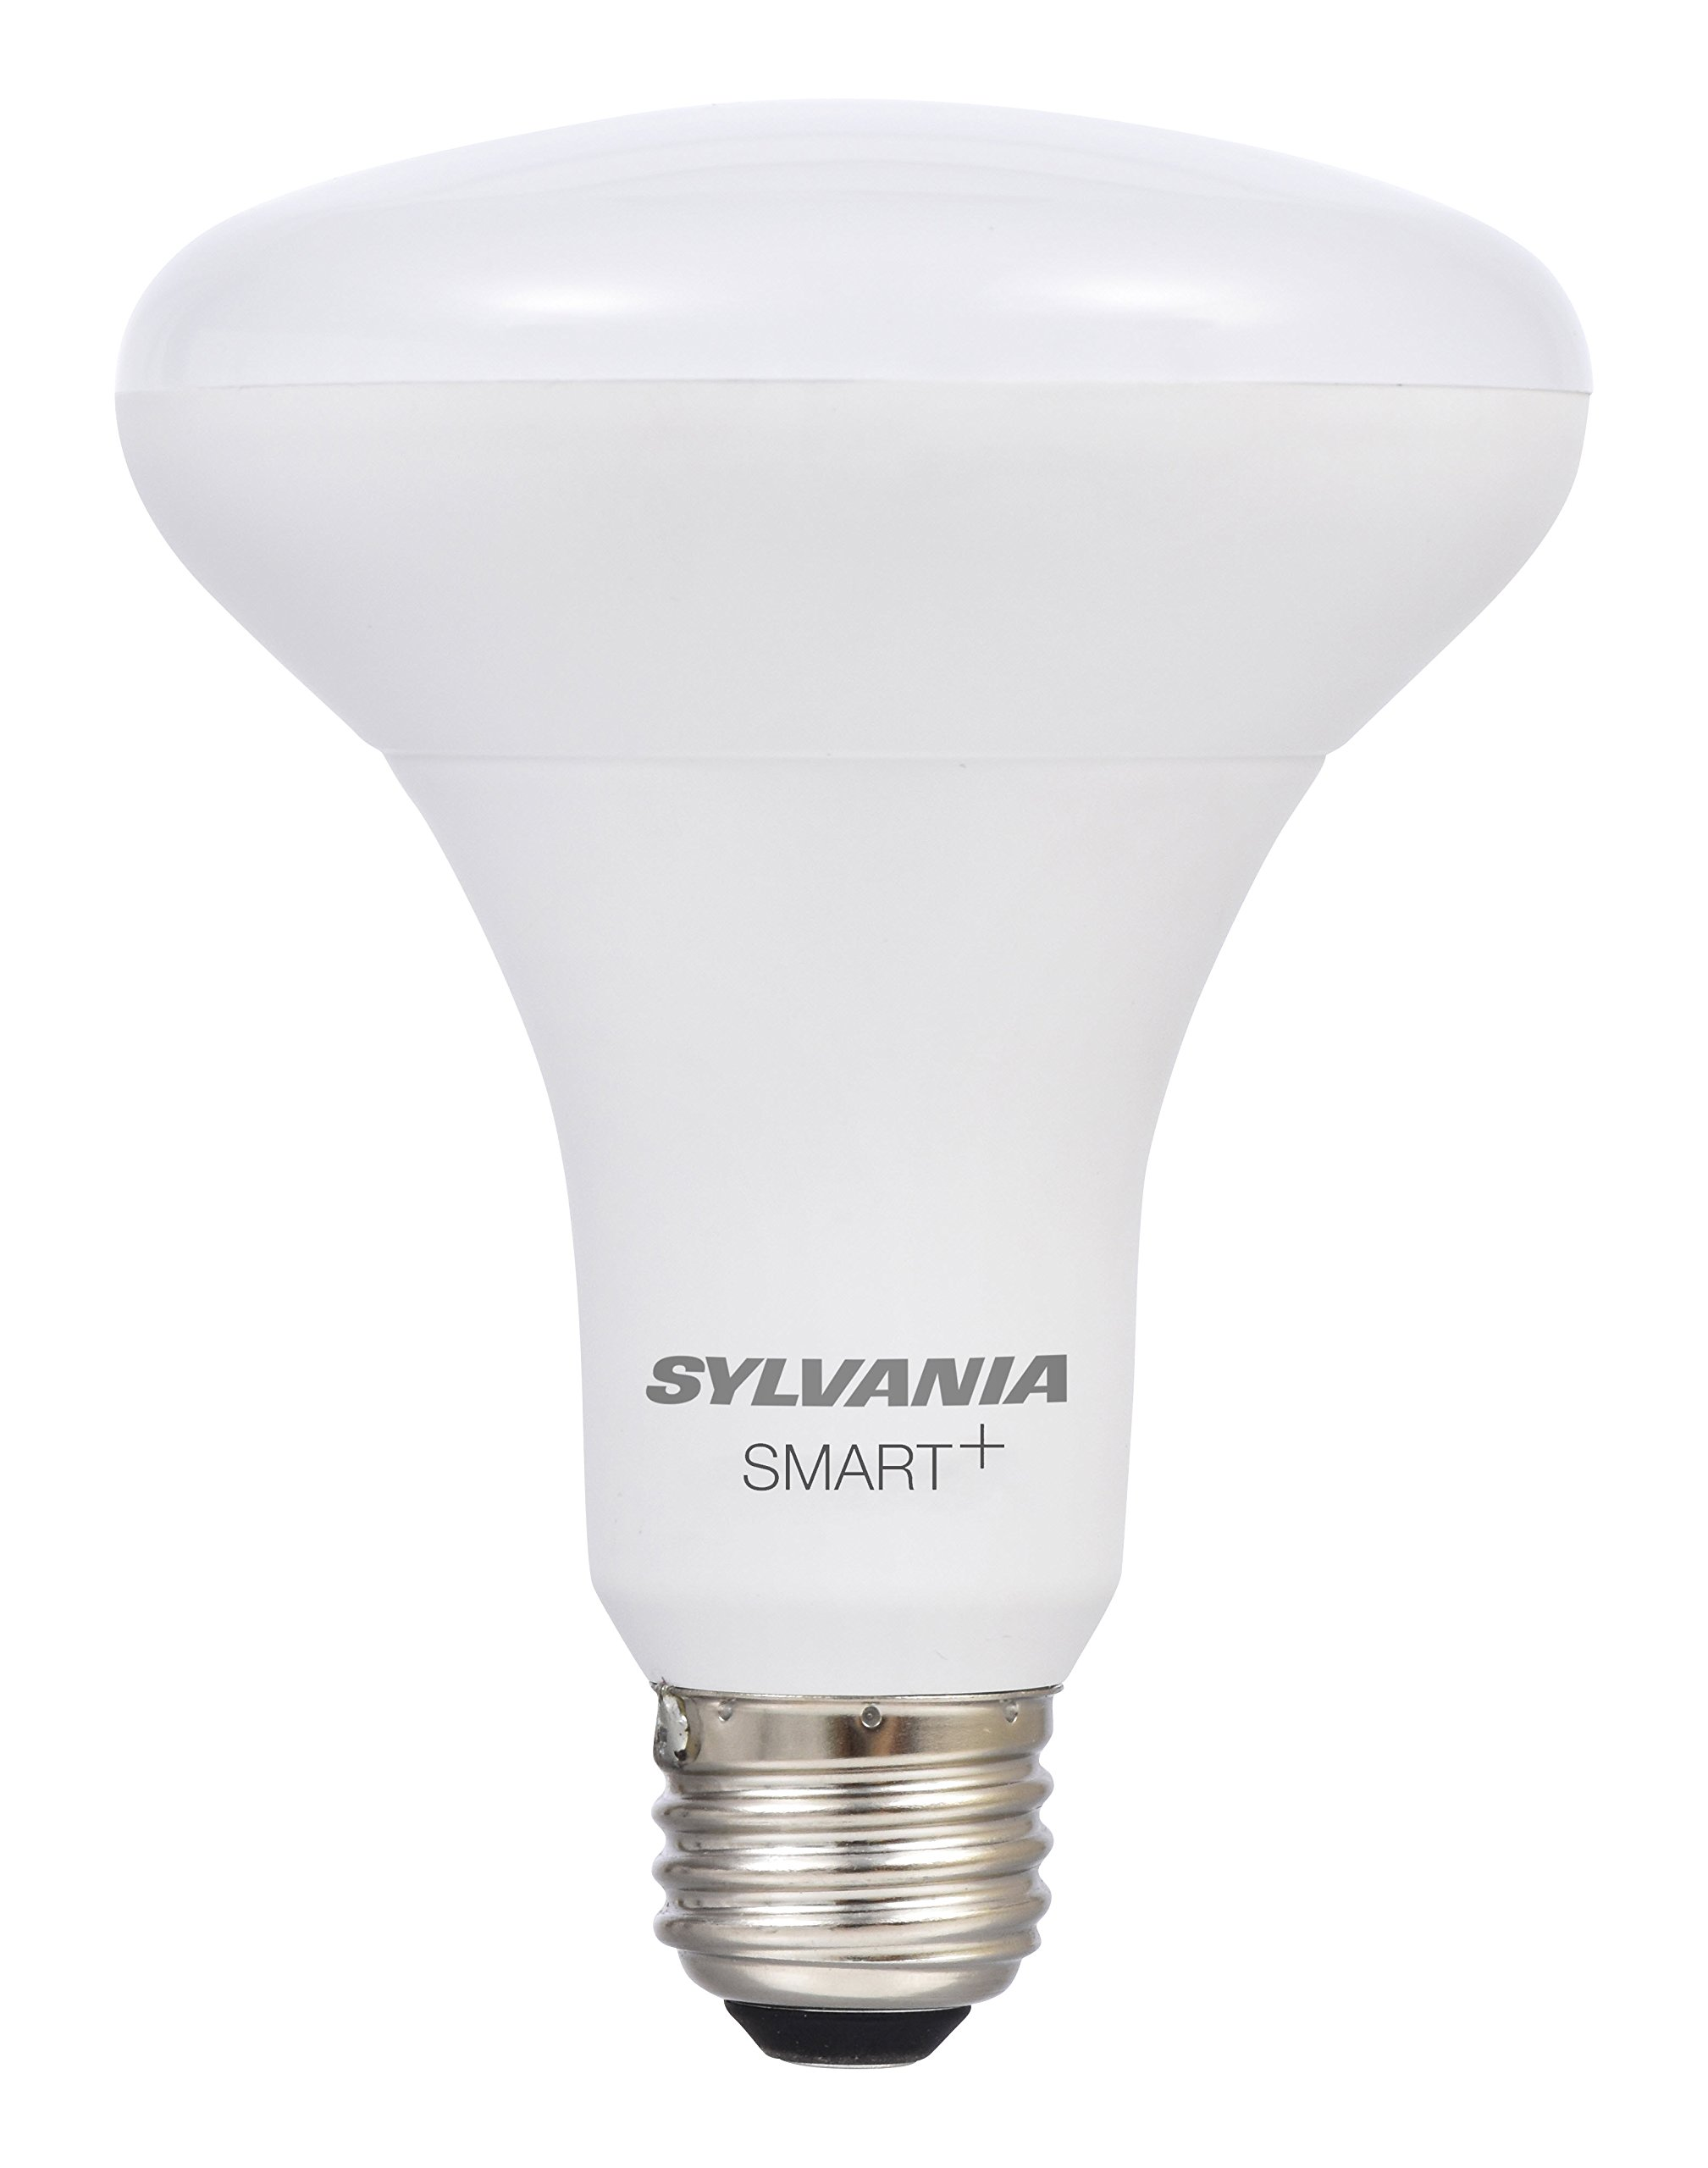 Sylvania Smart Home 74581 Dim LED Light Bulb, BR30 Dimmable White, 60W Equivalent, Works with SmartThings and Alexa, 10 Year Series Soft